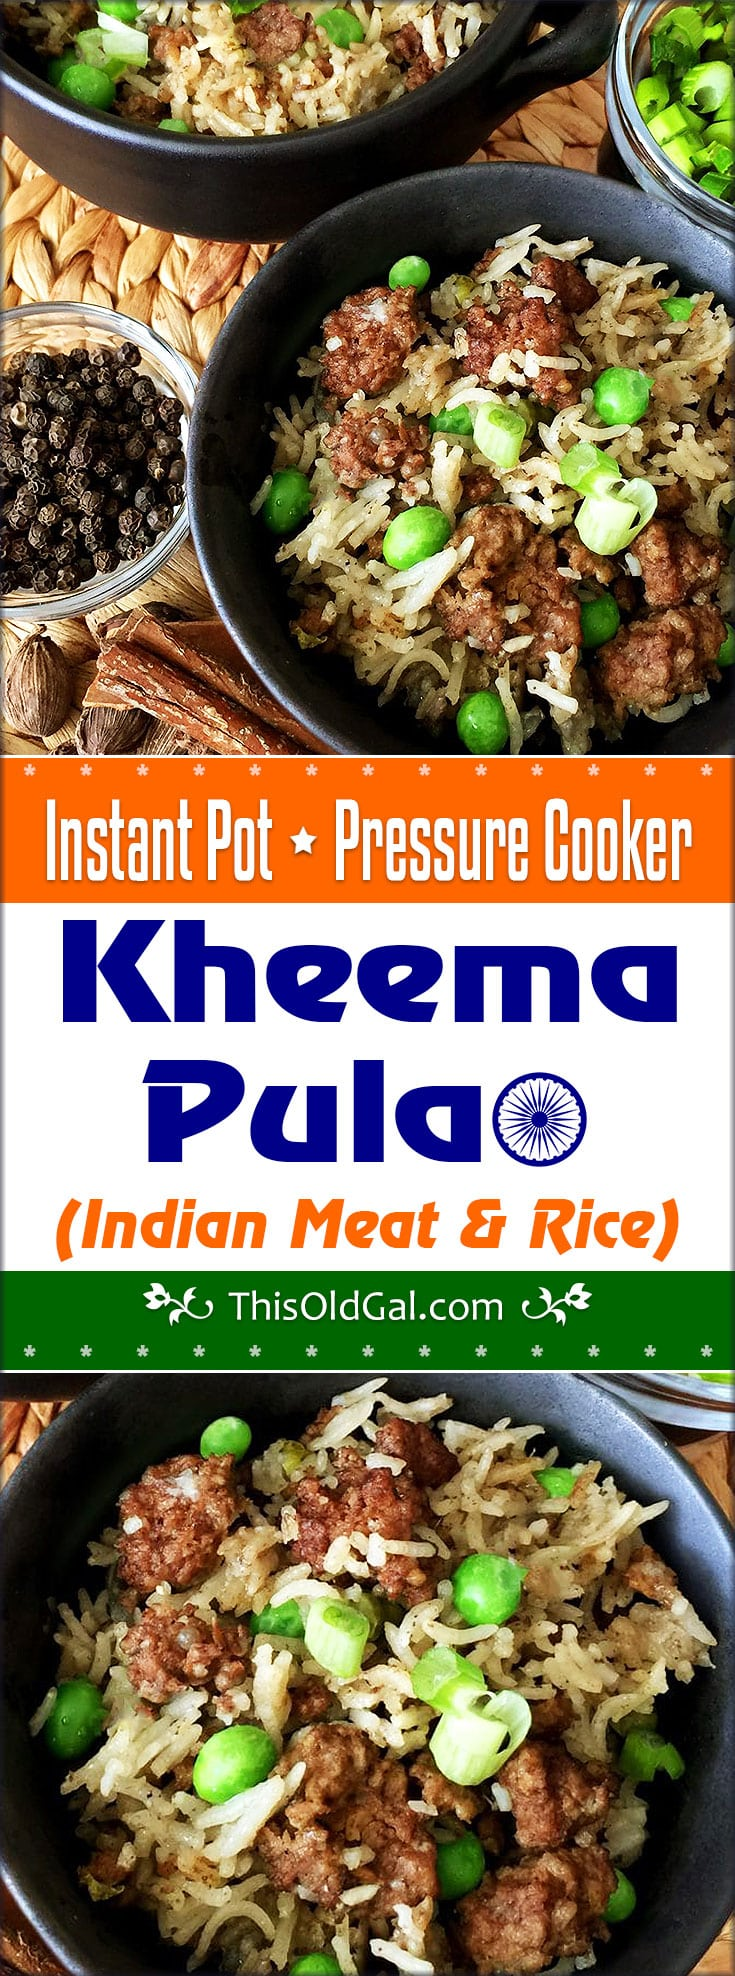 Pressure Cooker Kheema Pulao Indian Meat Amp Rice This Old Gal